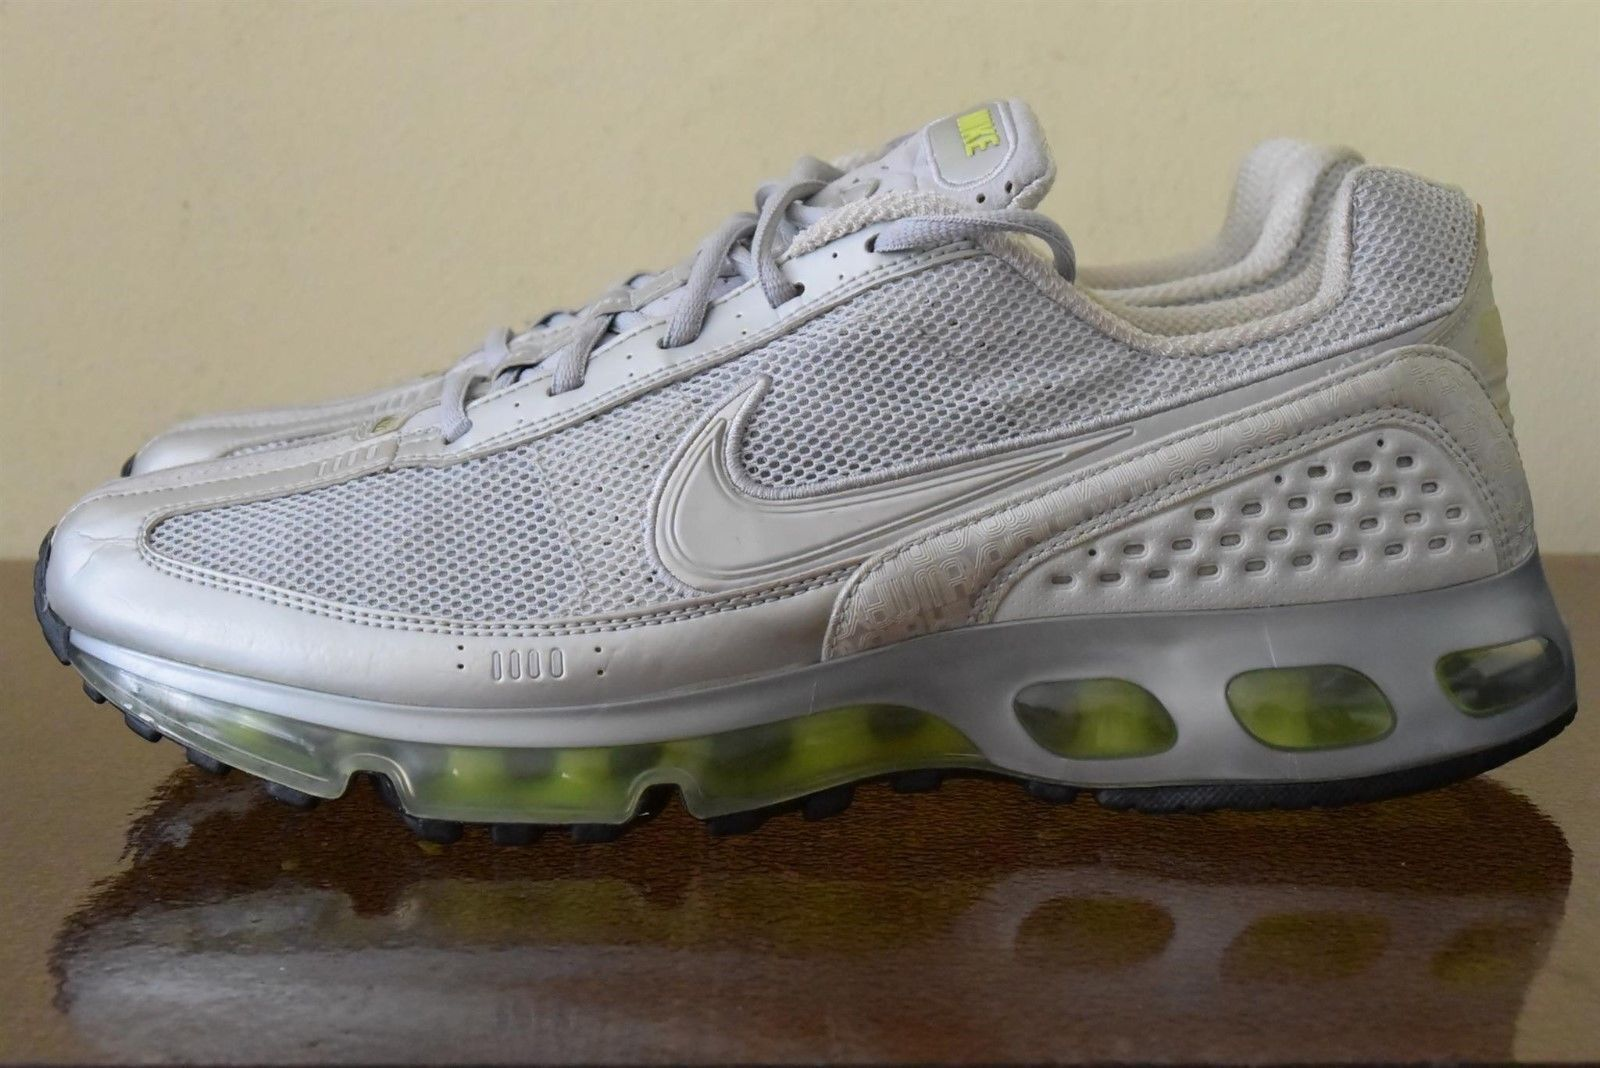 Nike Air Max 360 White Silver Lime Green 318159-004 Sz 11